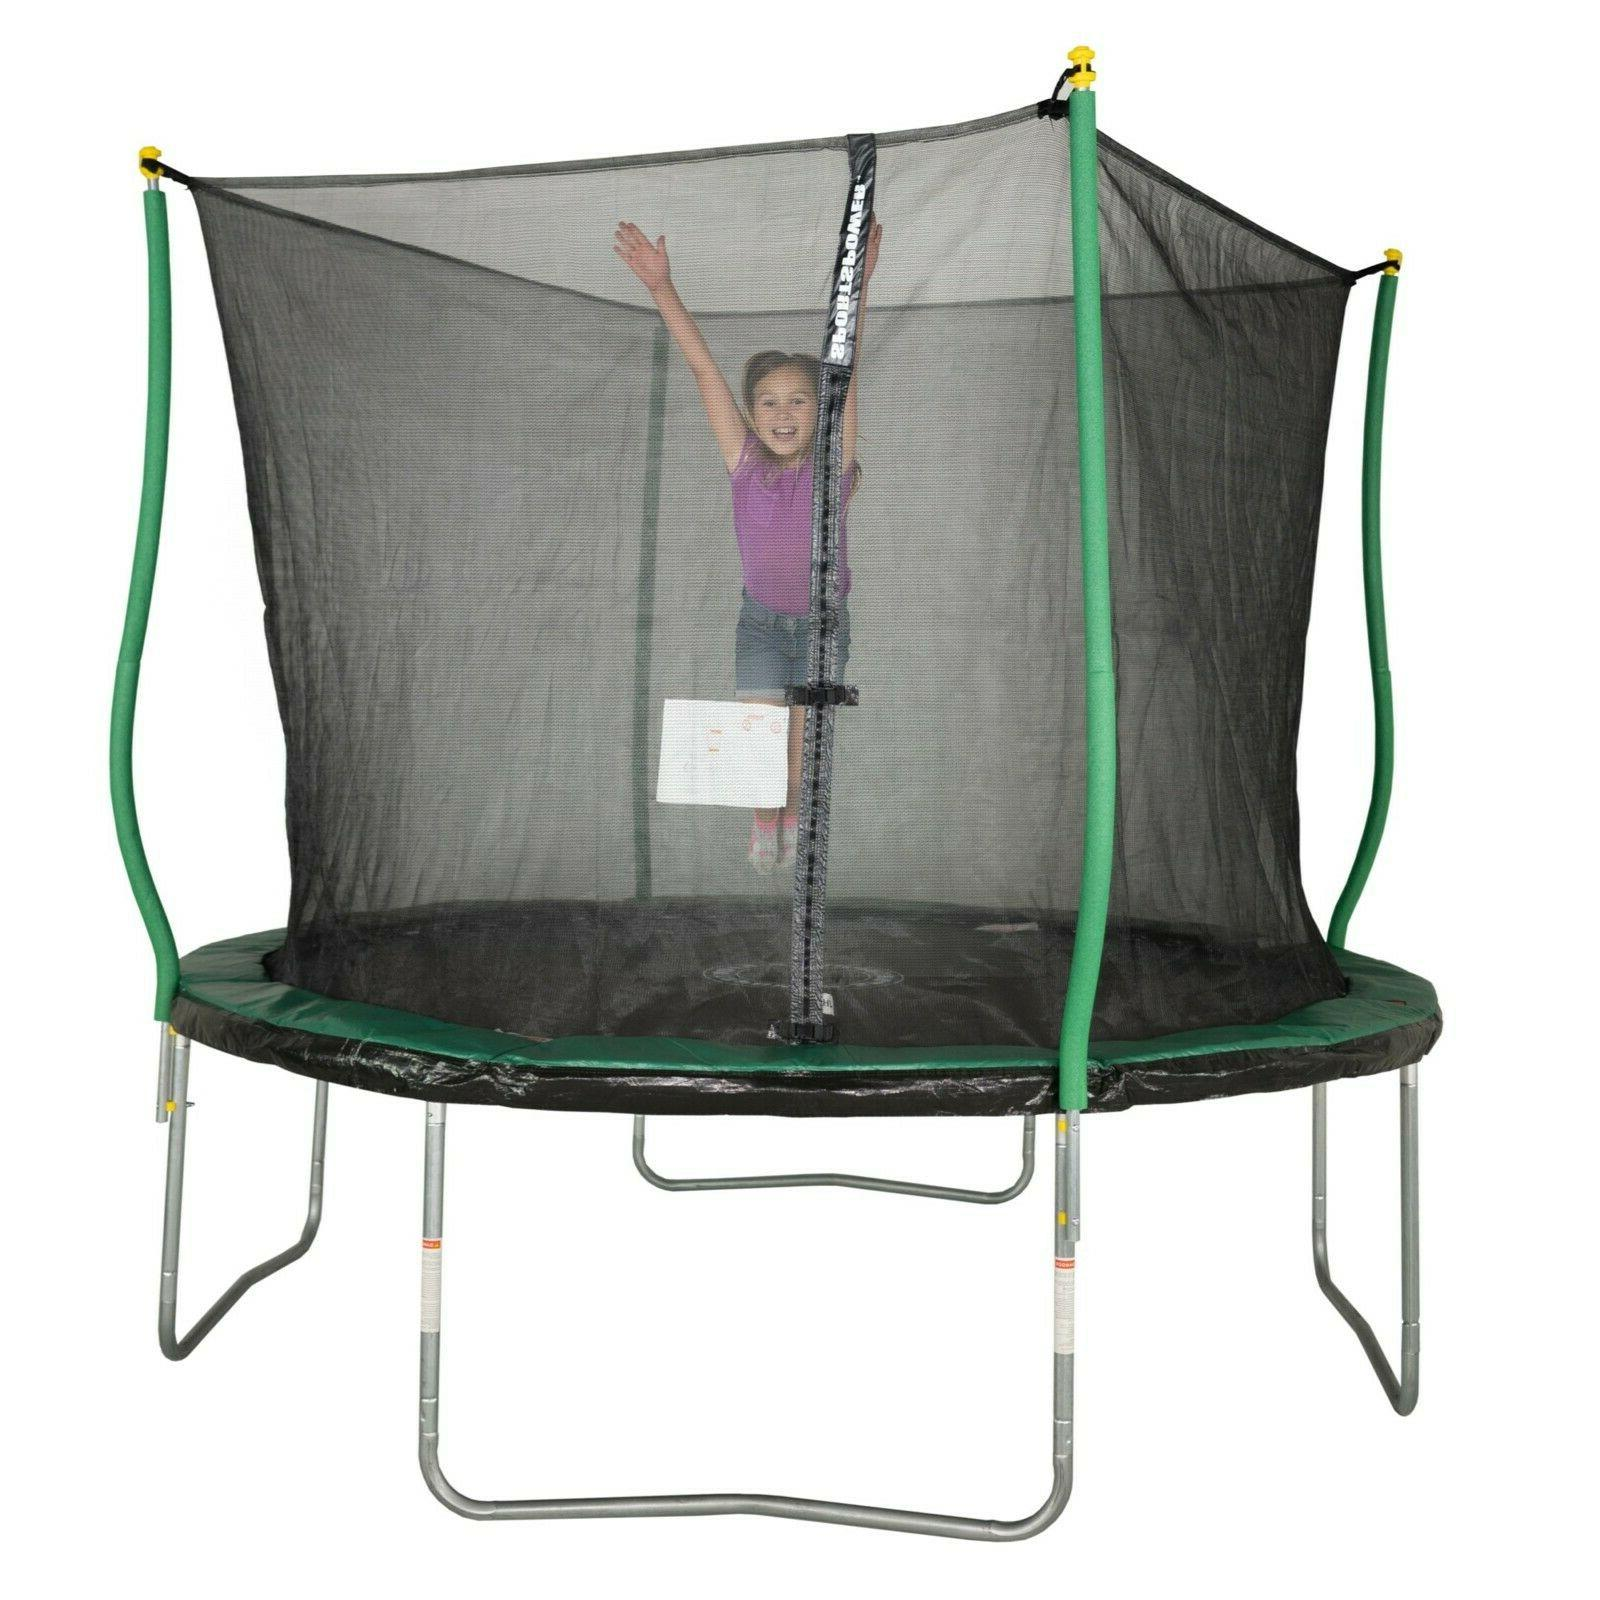 bounce pro 10 foottrampoline with classic enclosure